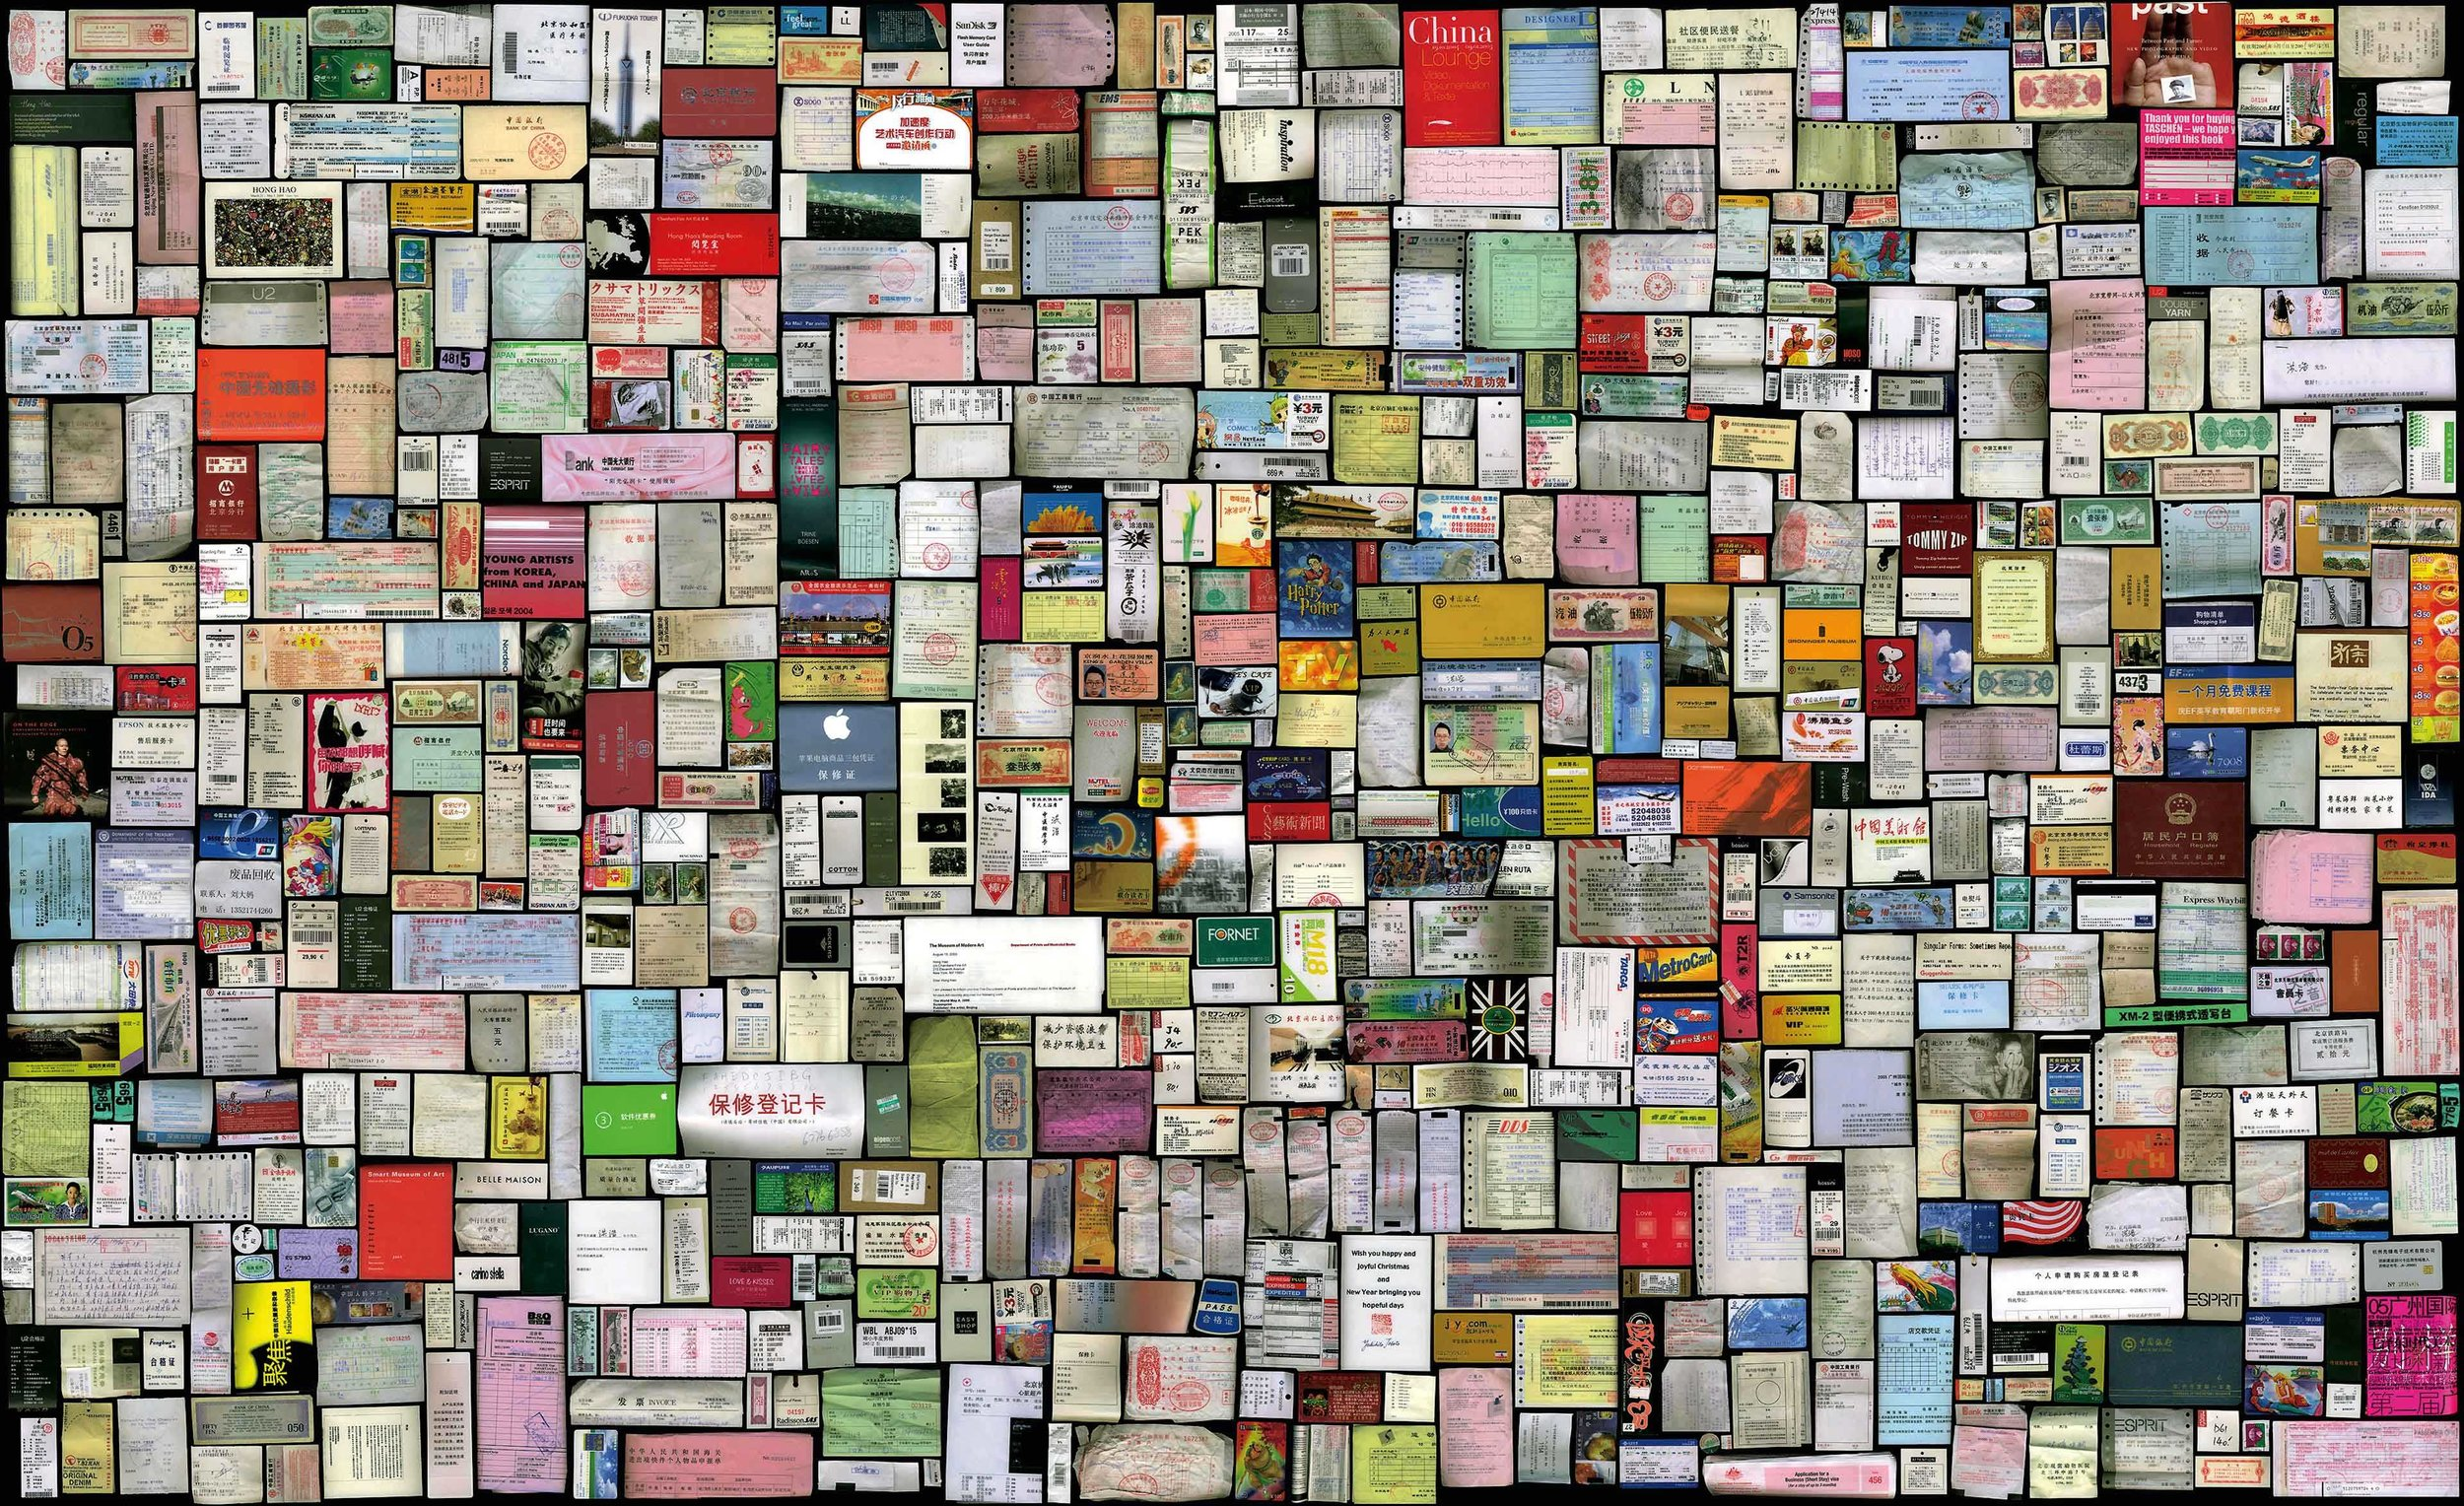 © HONG HAO, My Things of Book Keeping of 2004-5A, 2006. Courtesy of Pace Gallery